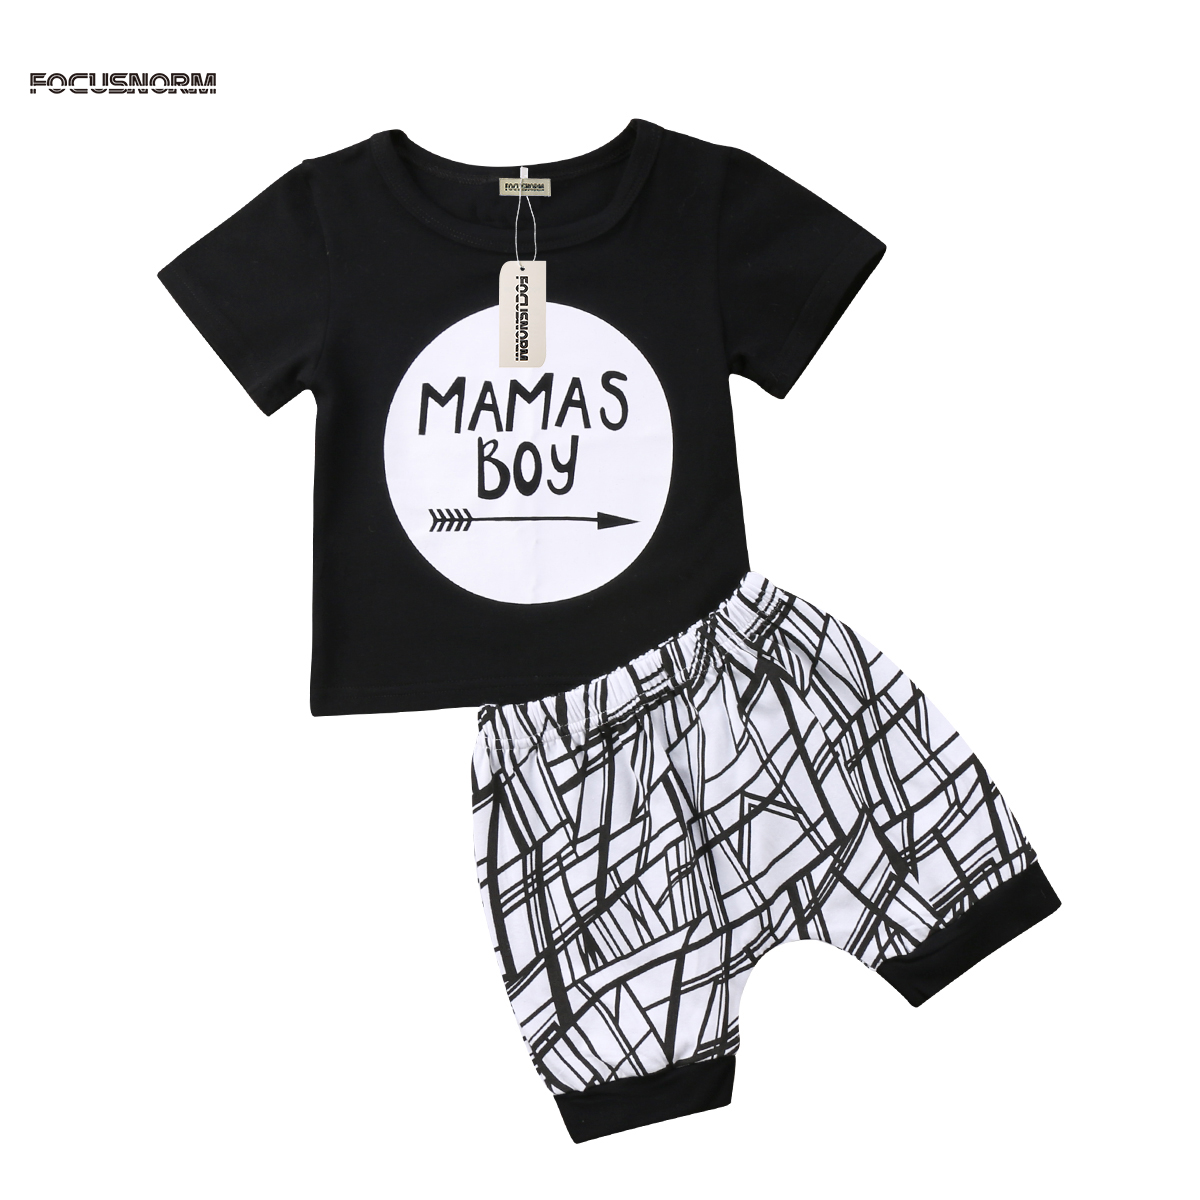 New Fashion Newborn Infant Baby Boy Clothes Print Letter Toddler Cotton T-shirt Tops+Pants Outfit Clothes